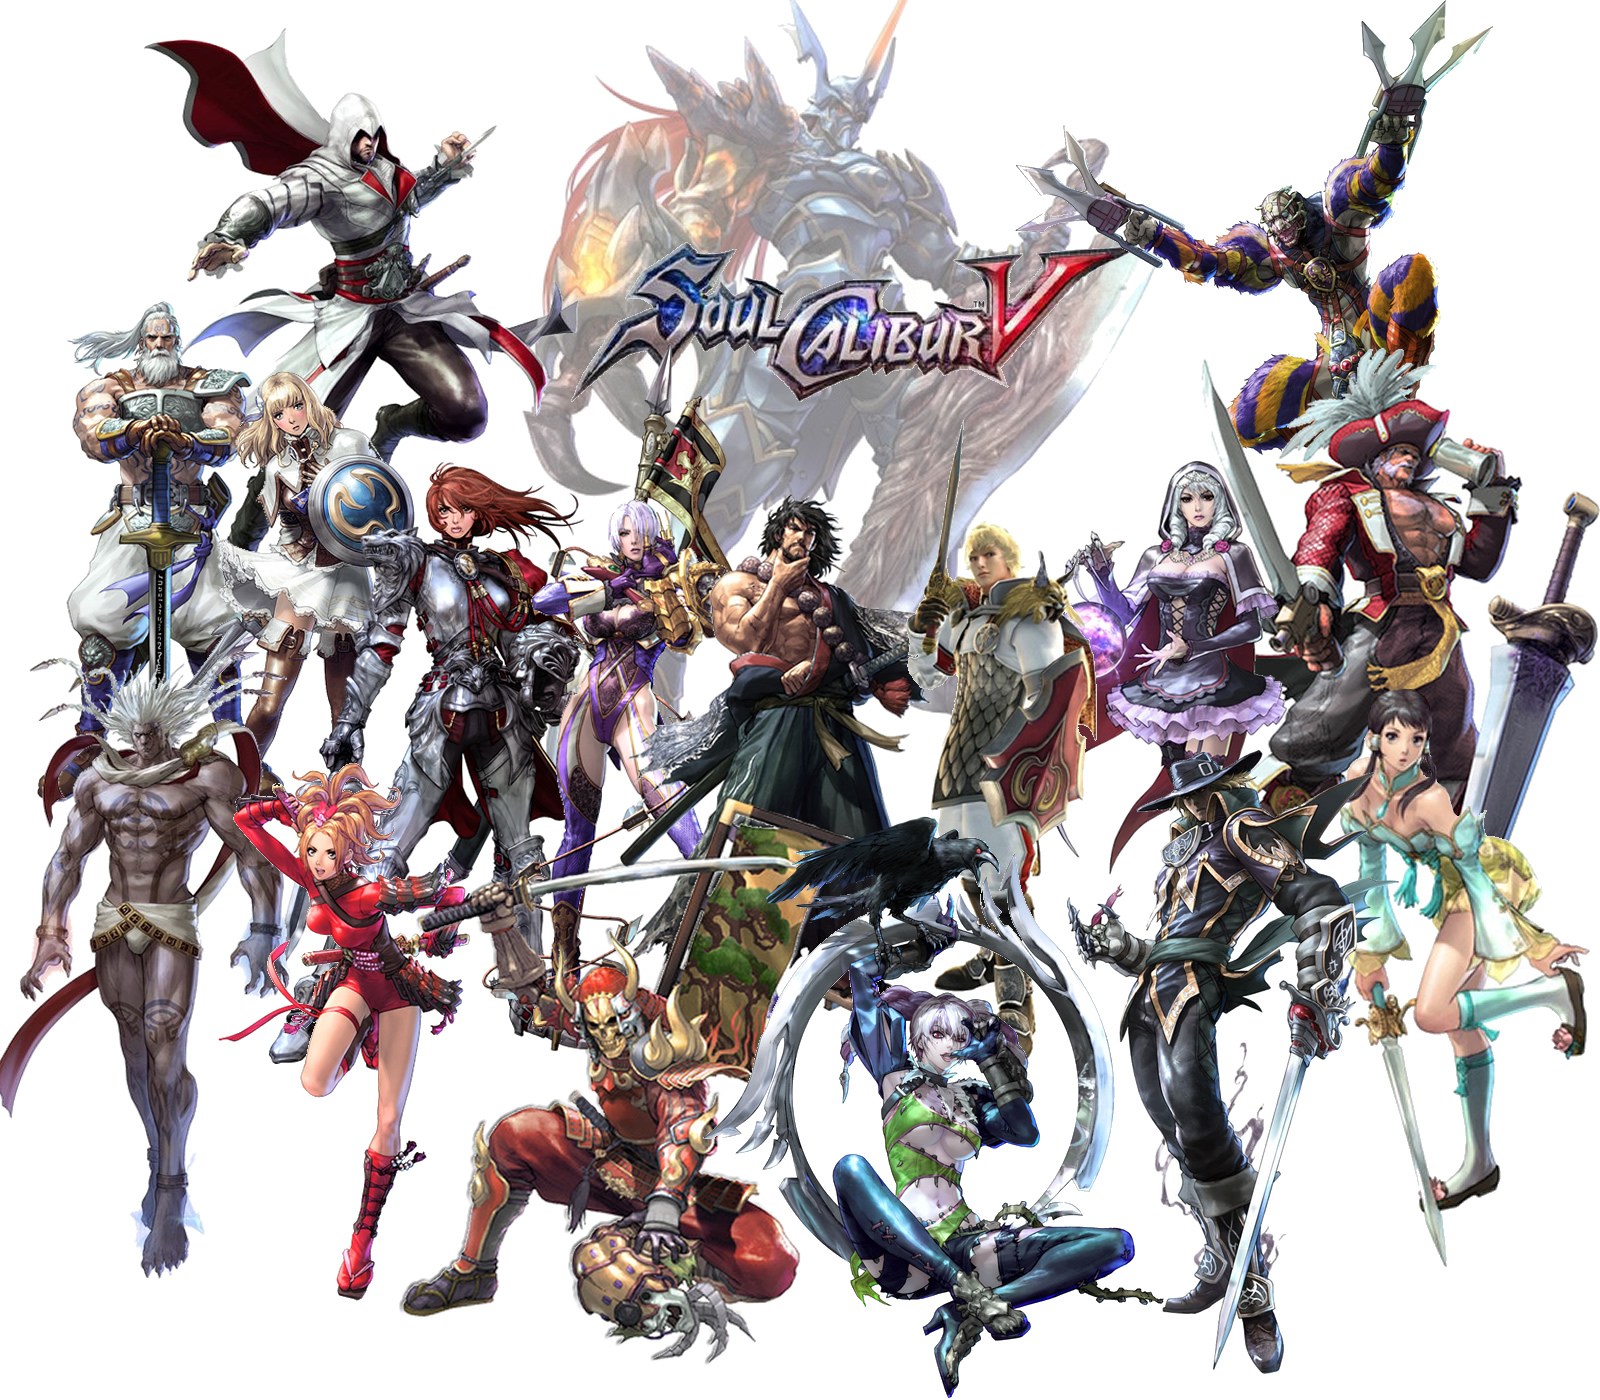 Soul calibur 5 wallpaper by lewiano on deviantart - Soul calibur wallpaper ...